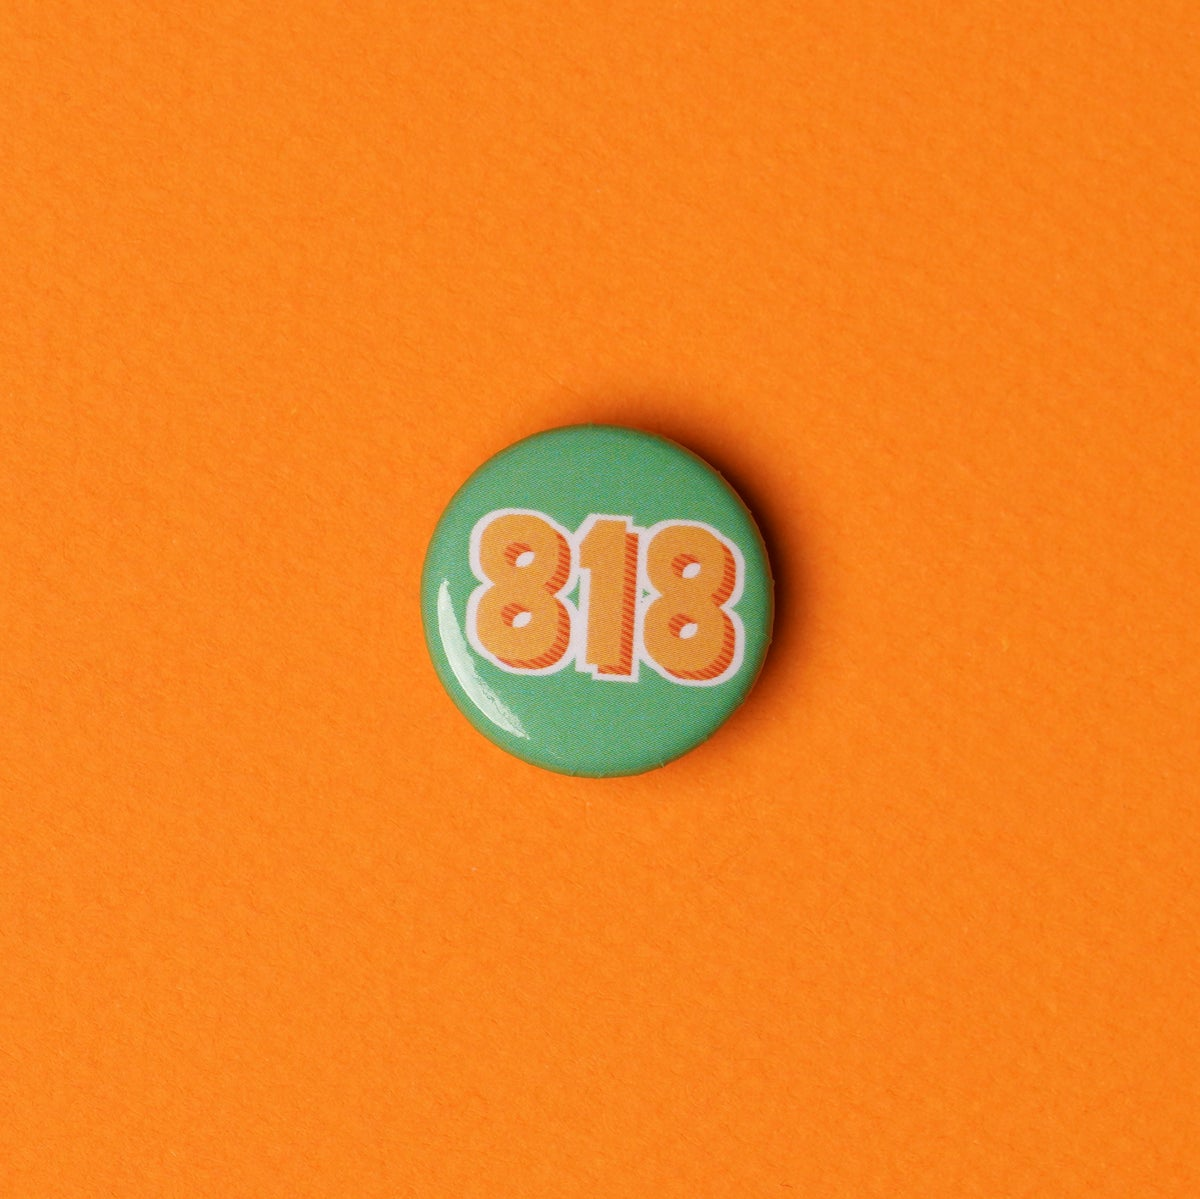 Image of 818 Button